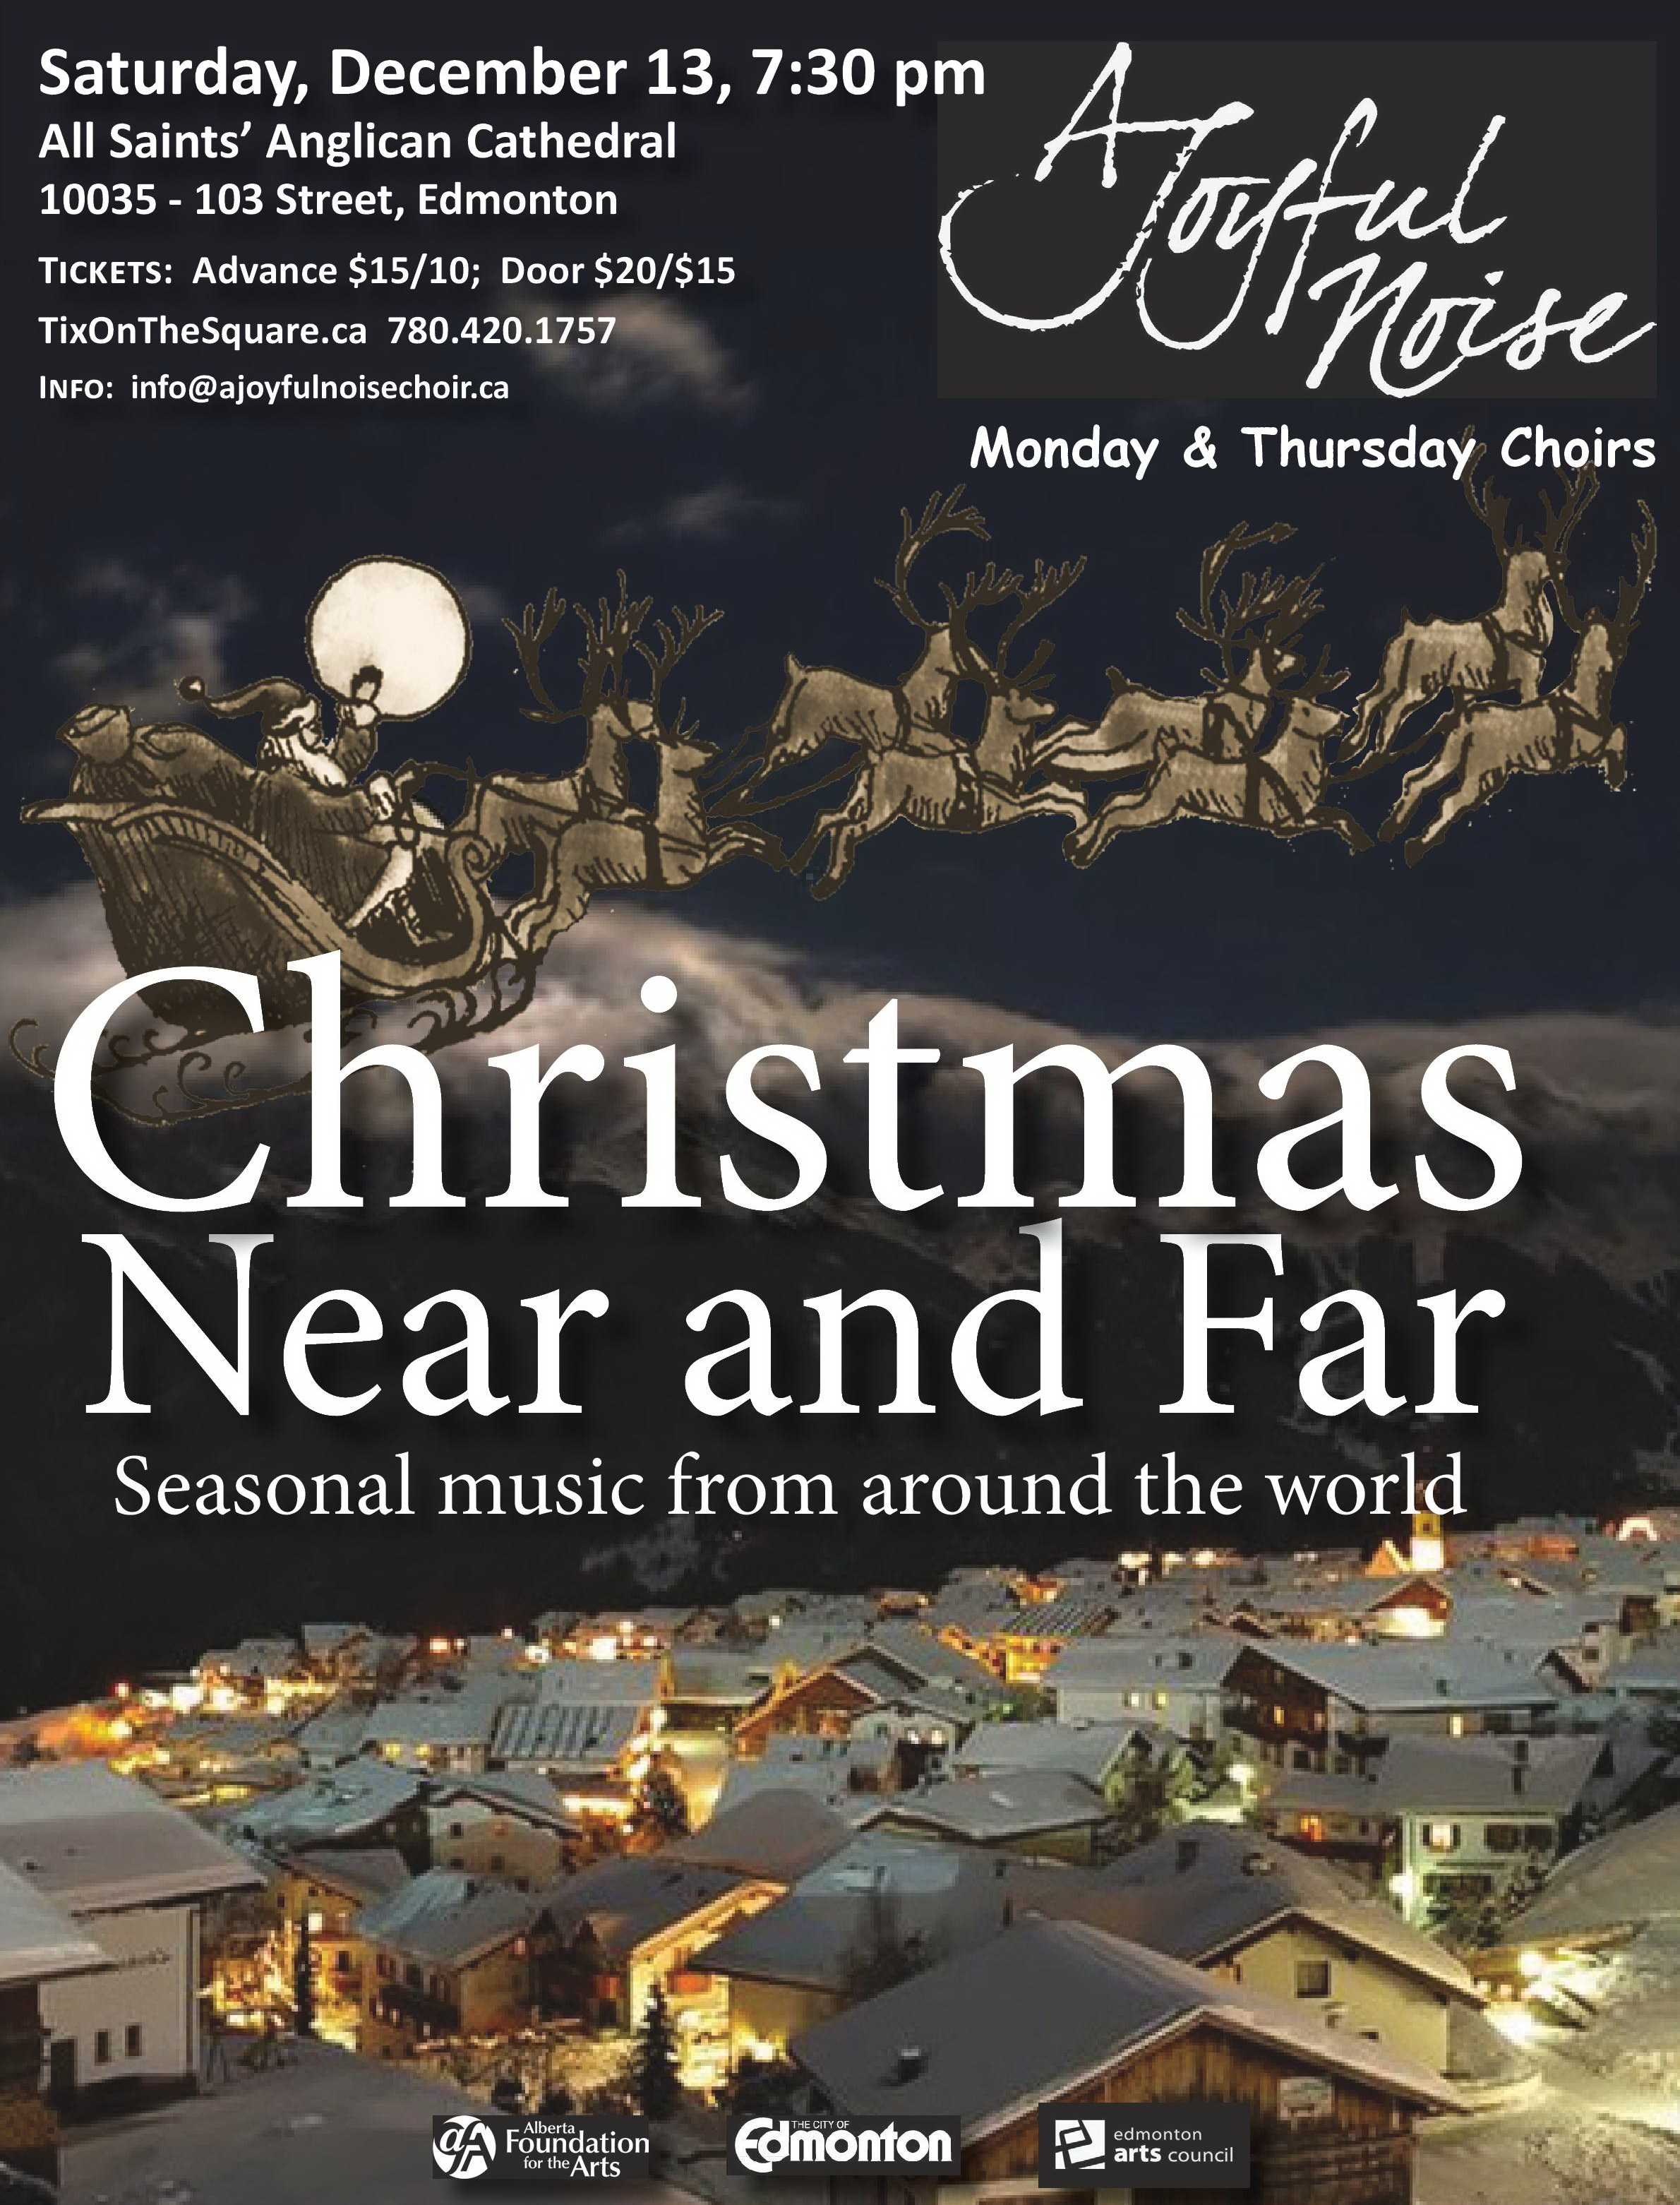 AJN 2014-12 Christmas Near and Far POSTER